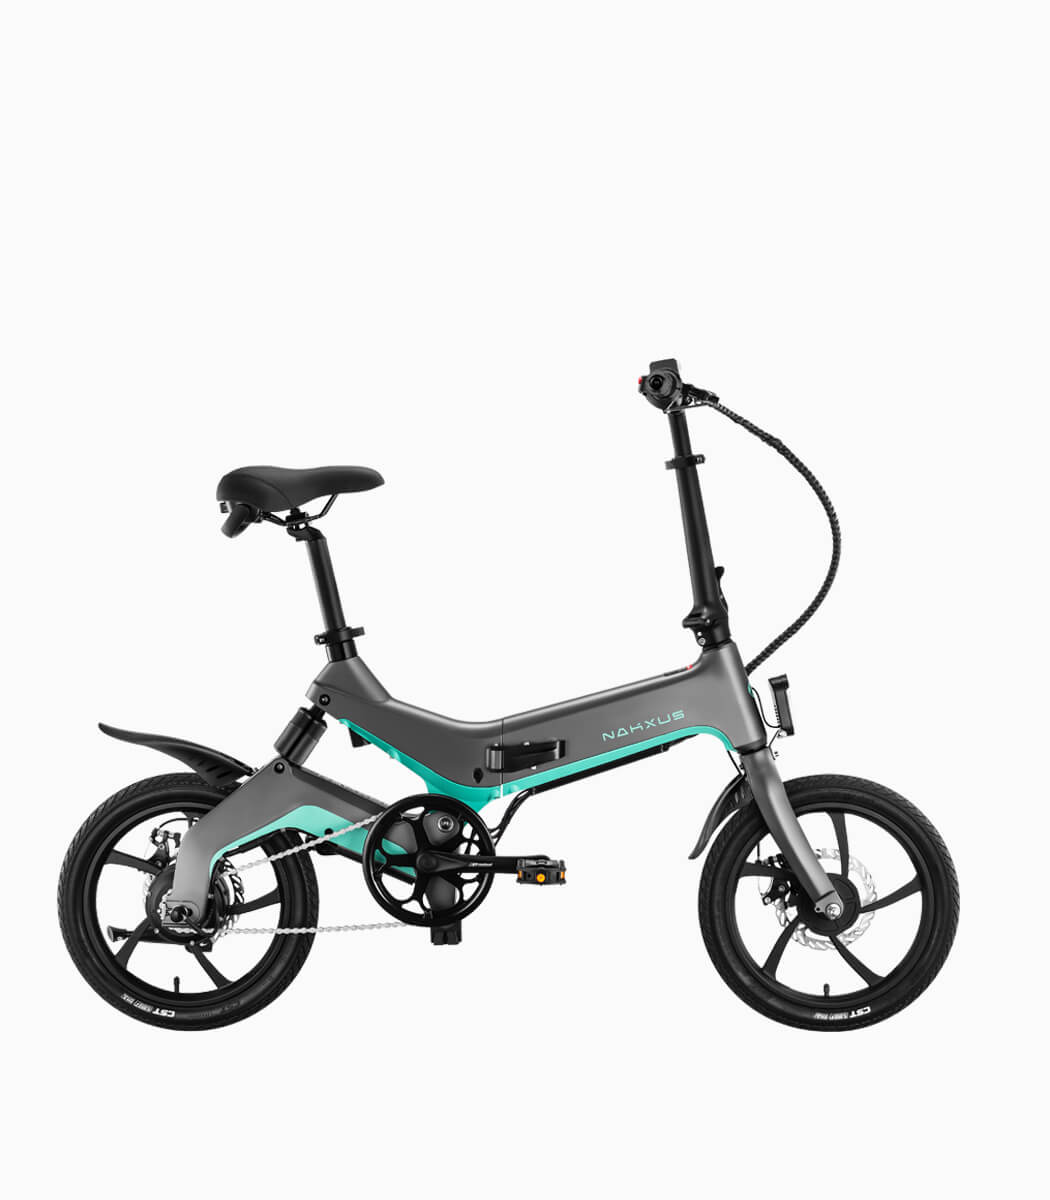 NAKXUS NF1 (SILVER-BLUE8.7AH) LTA approved ebike right